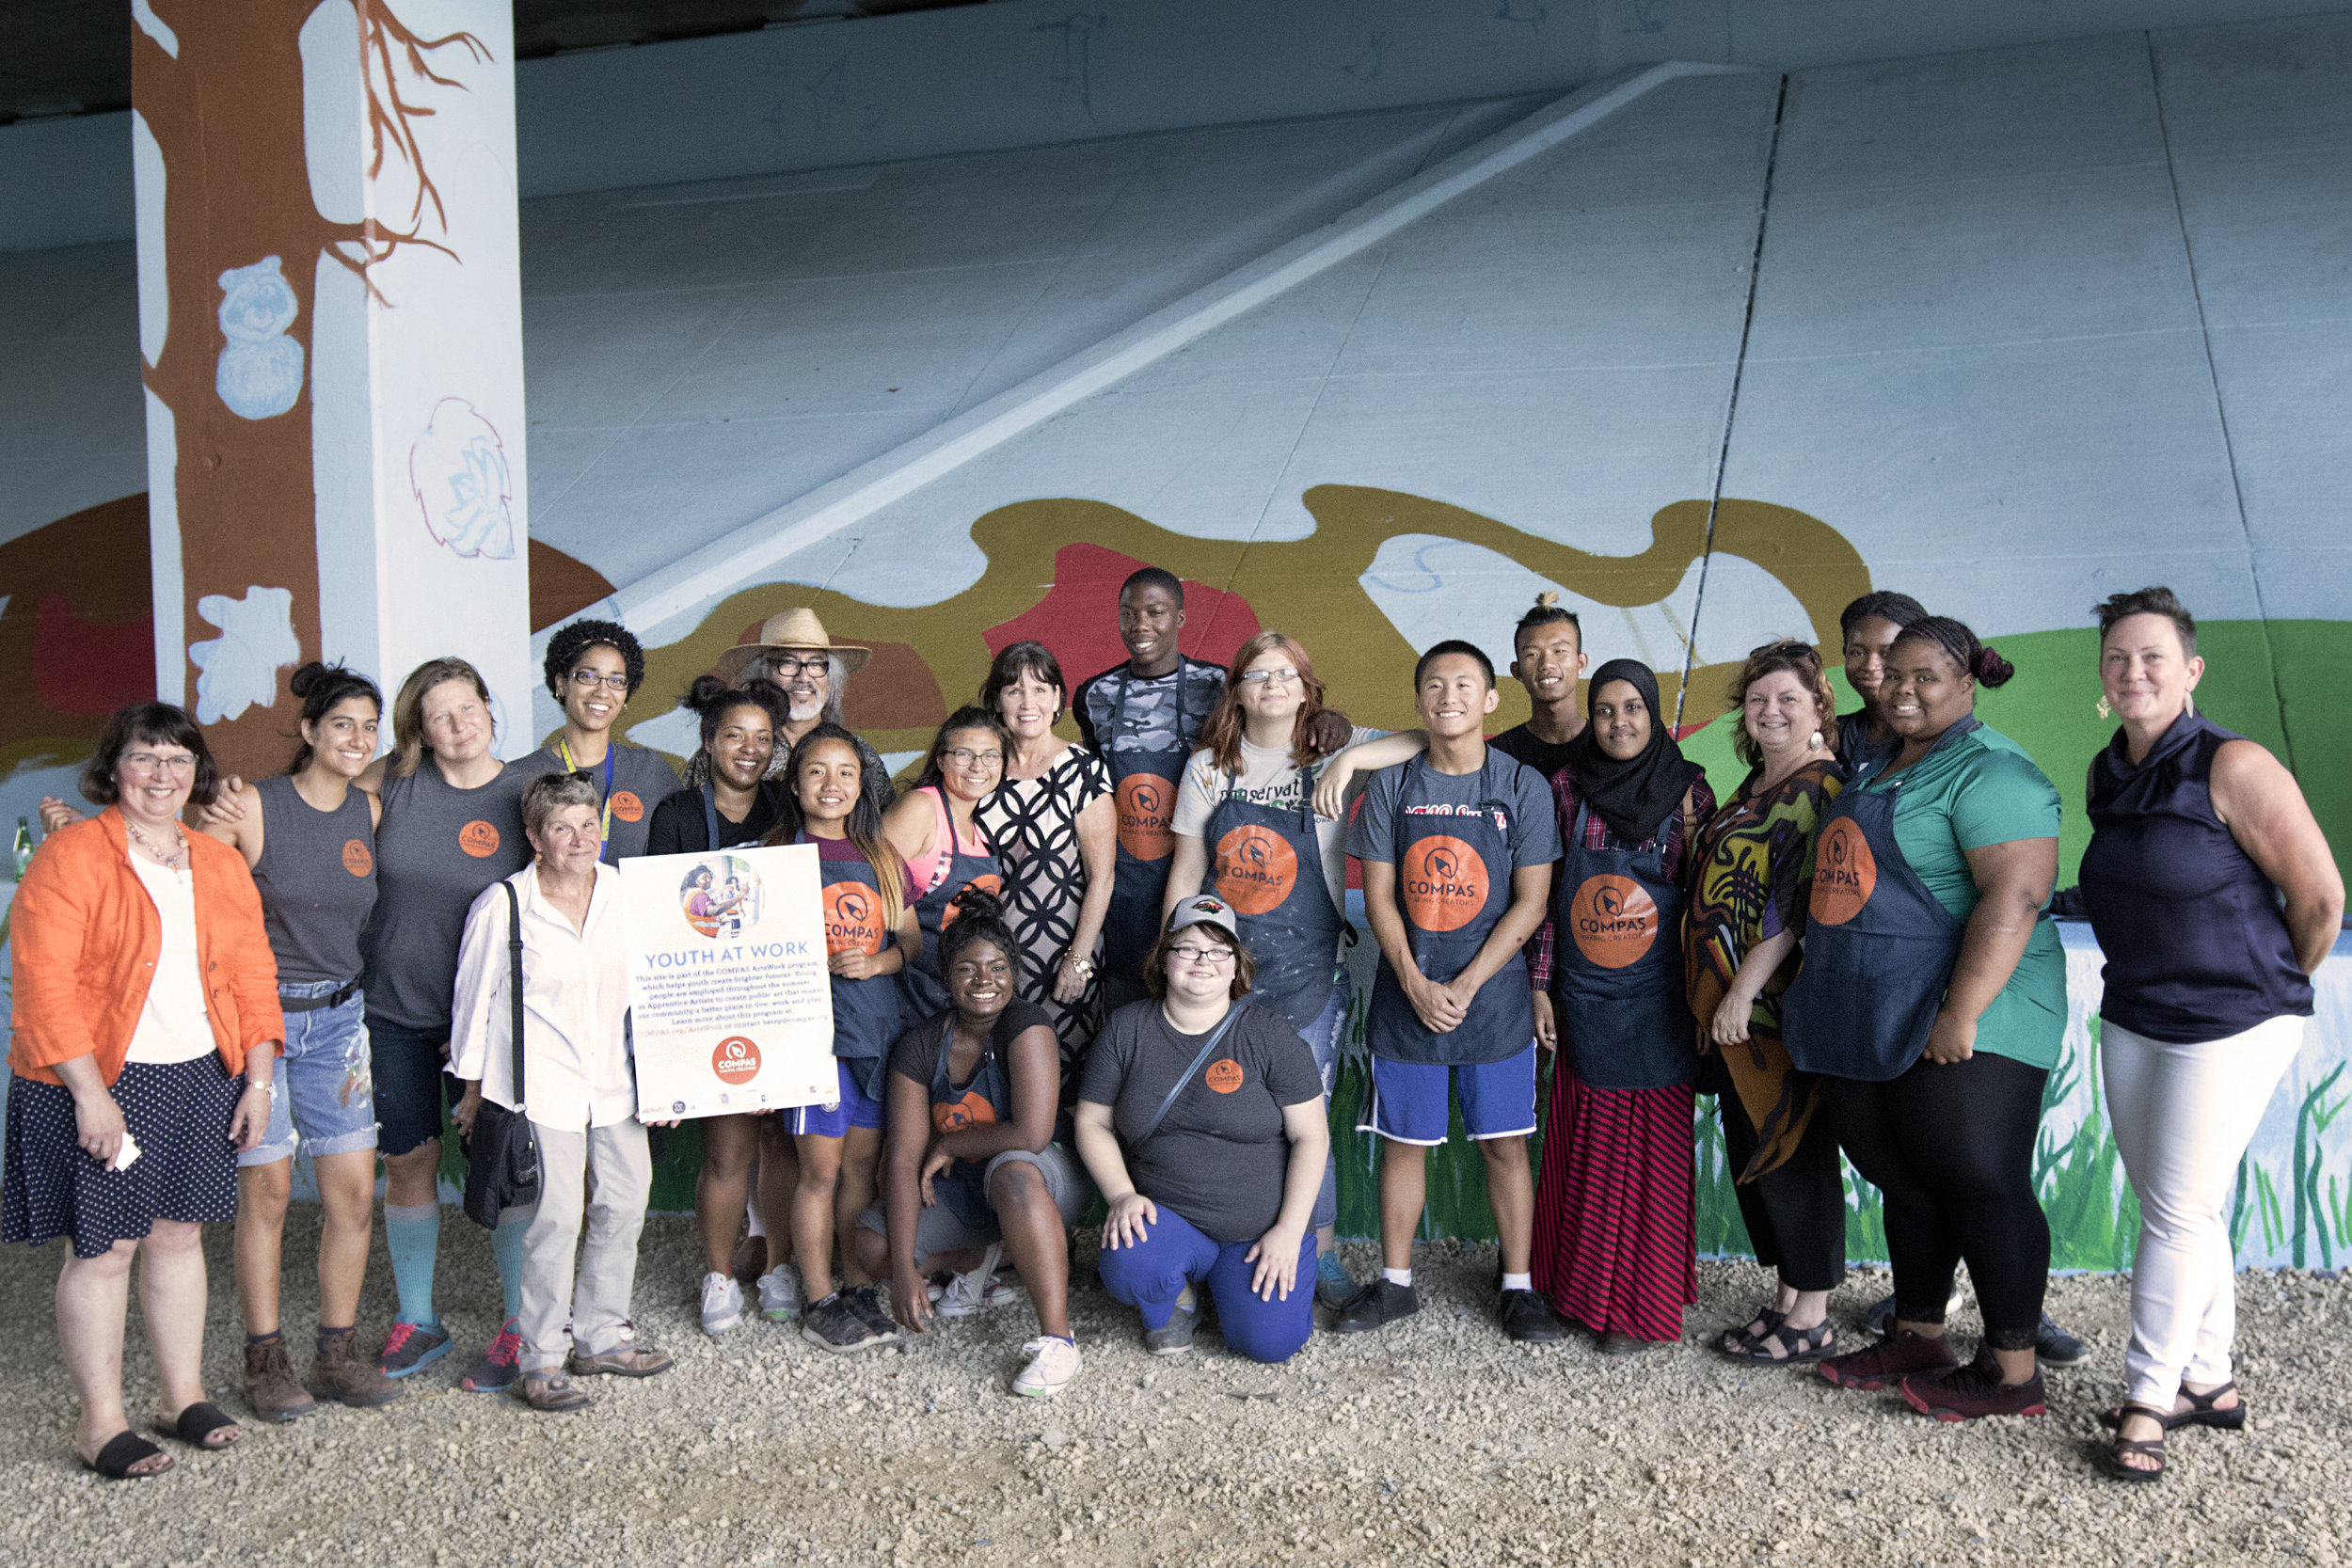 Youth at Work! ArtsWork Apprentices show off their mural-in-progress for a visit with Congresswoman Betty McCollum, Councilmember Amy Brendmoen, and other local leaders. Photo: Noah Linck